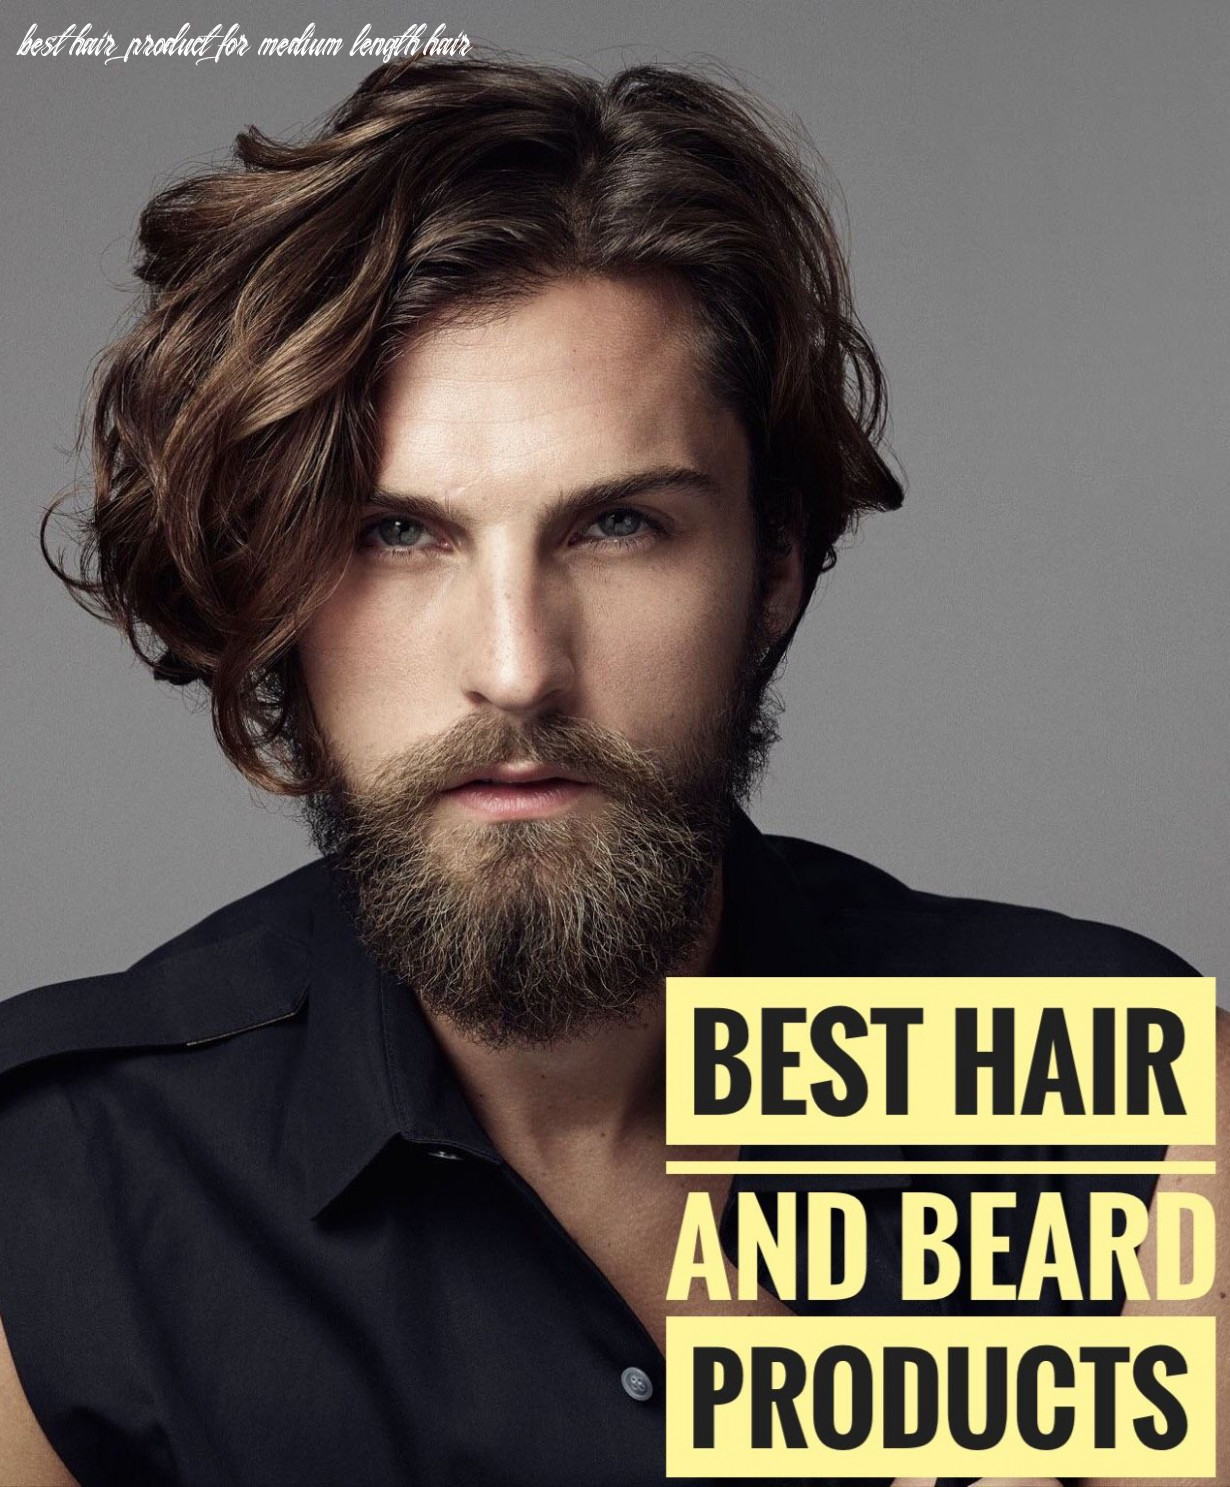 The best hair and beard products | cool hairstyles, curled